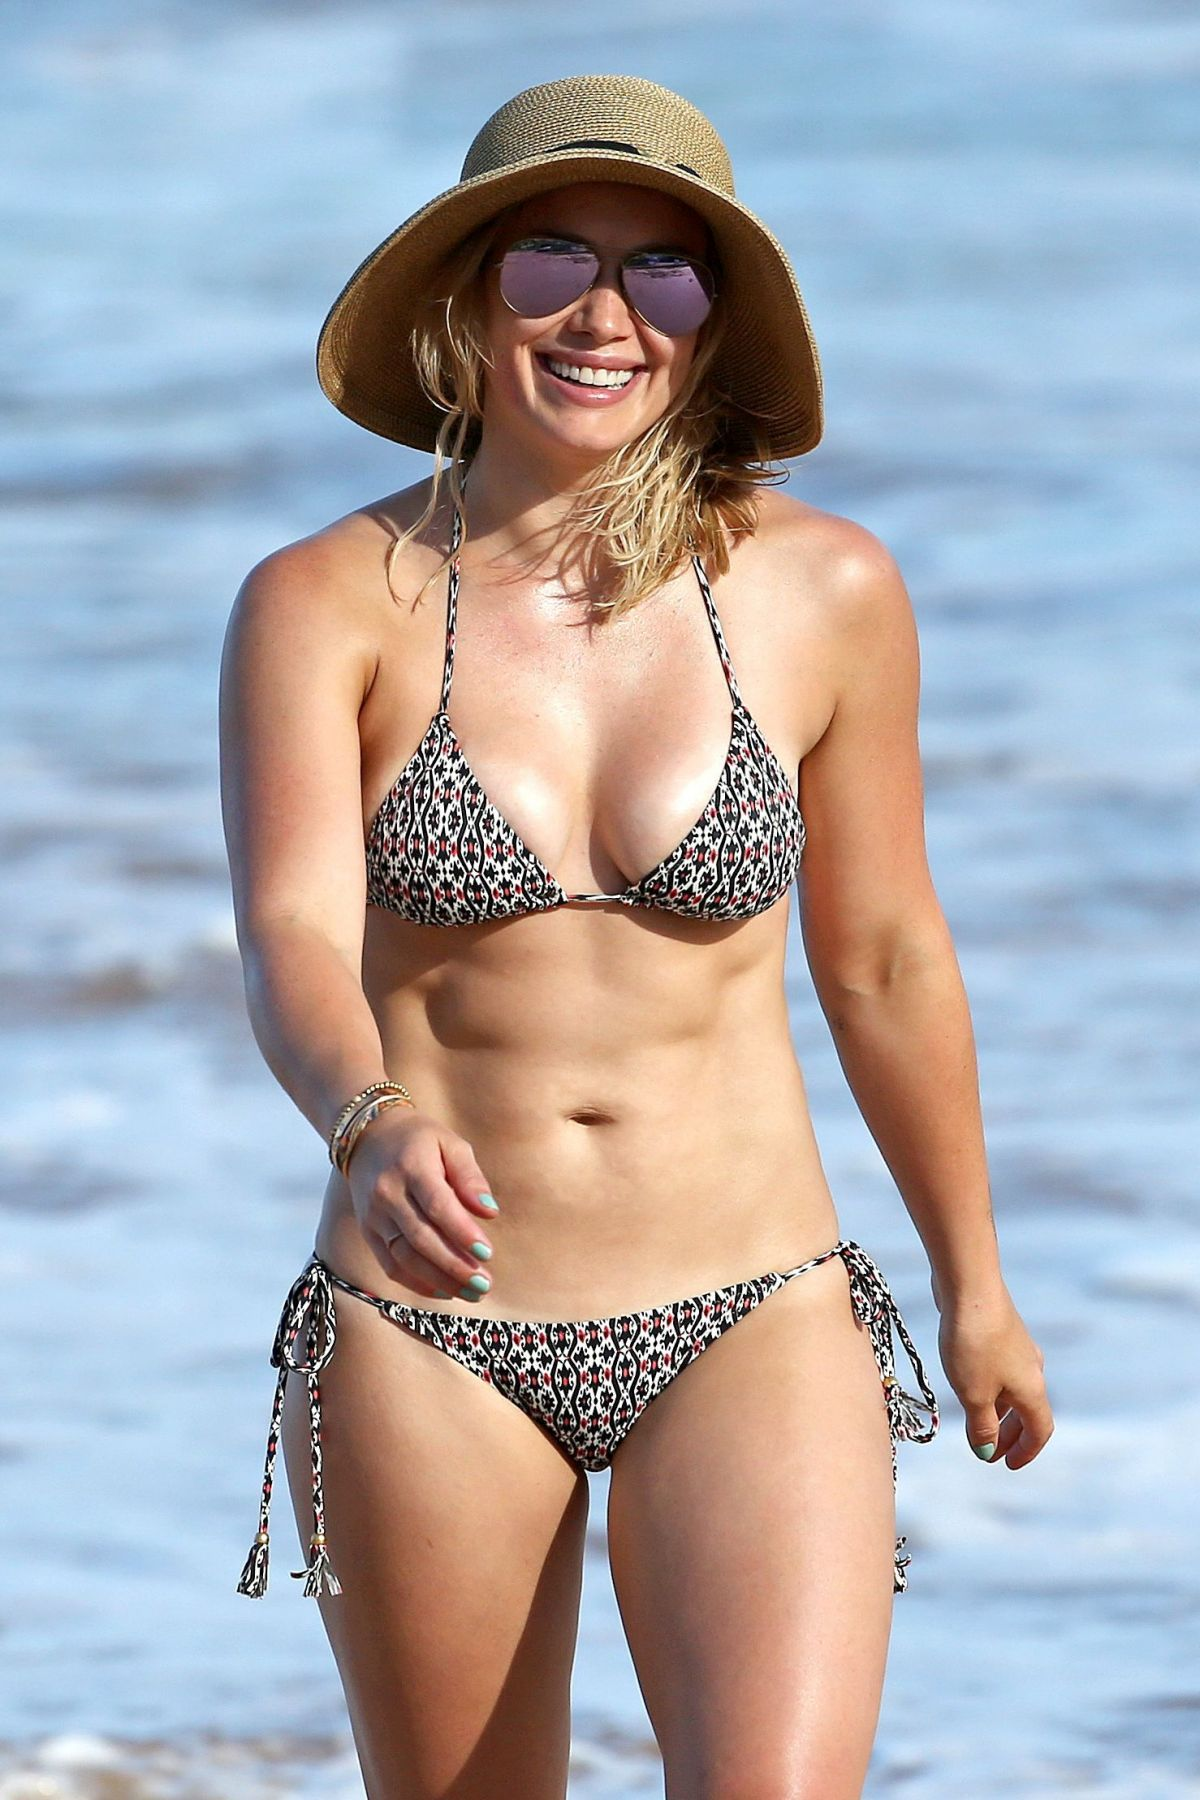 Hilary Duffs Bikini Body Has Seriously